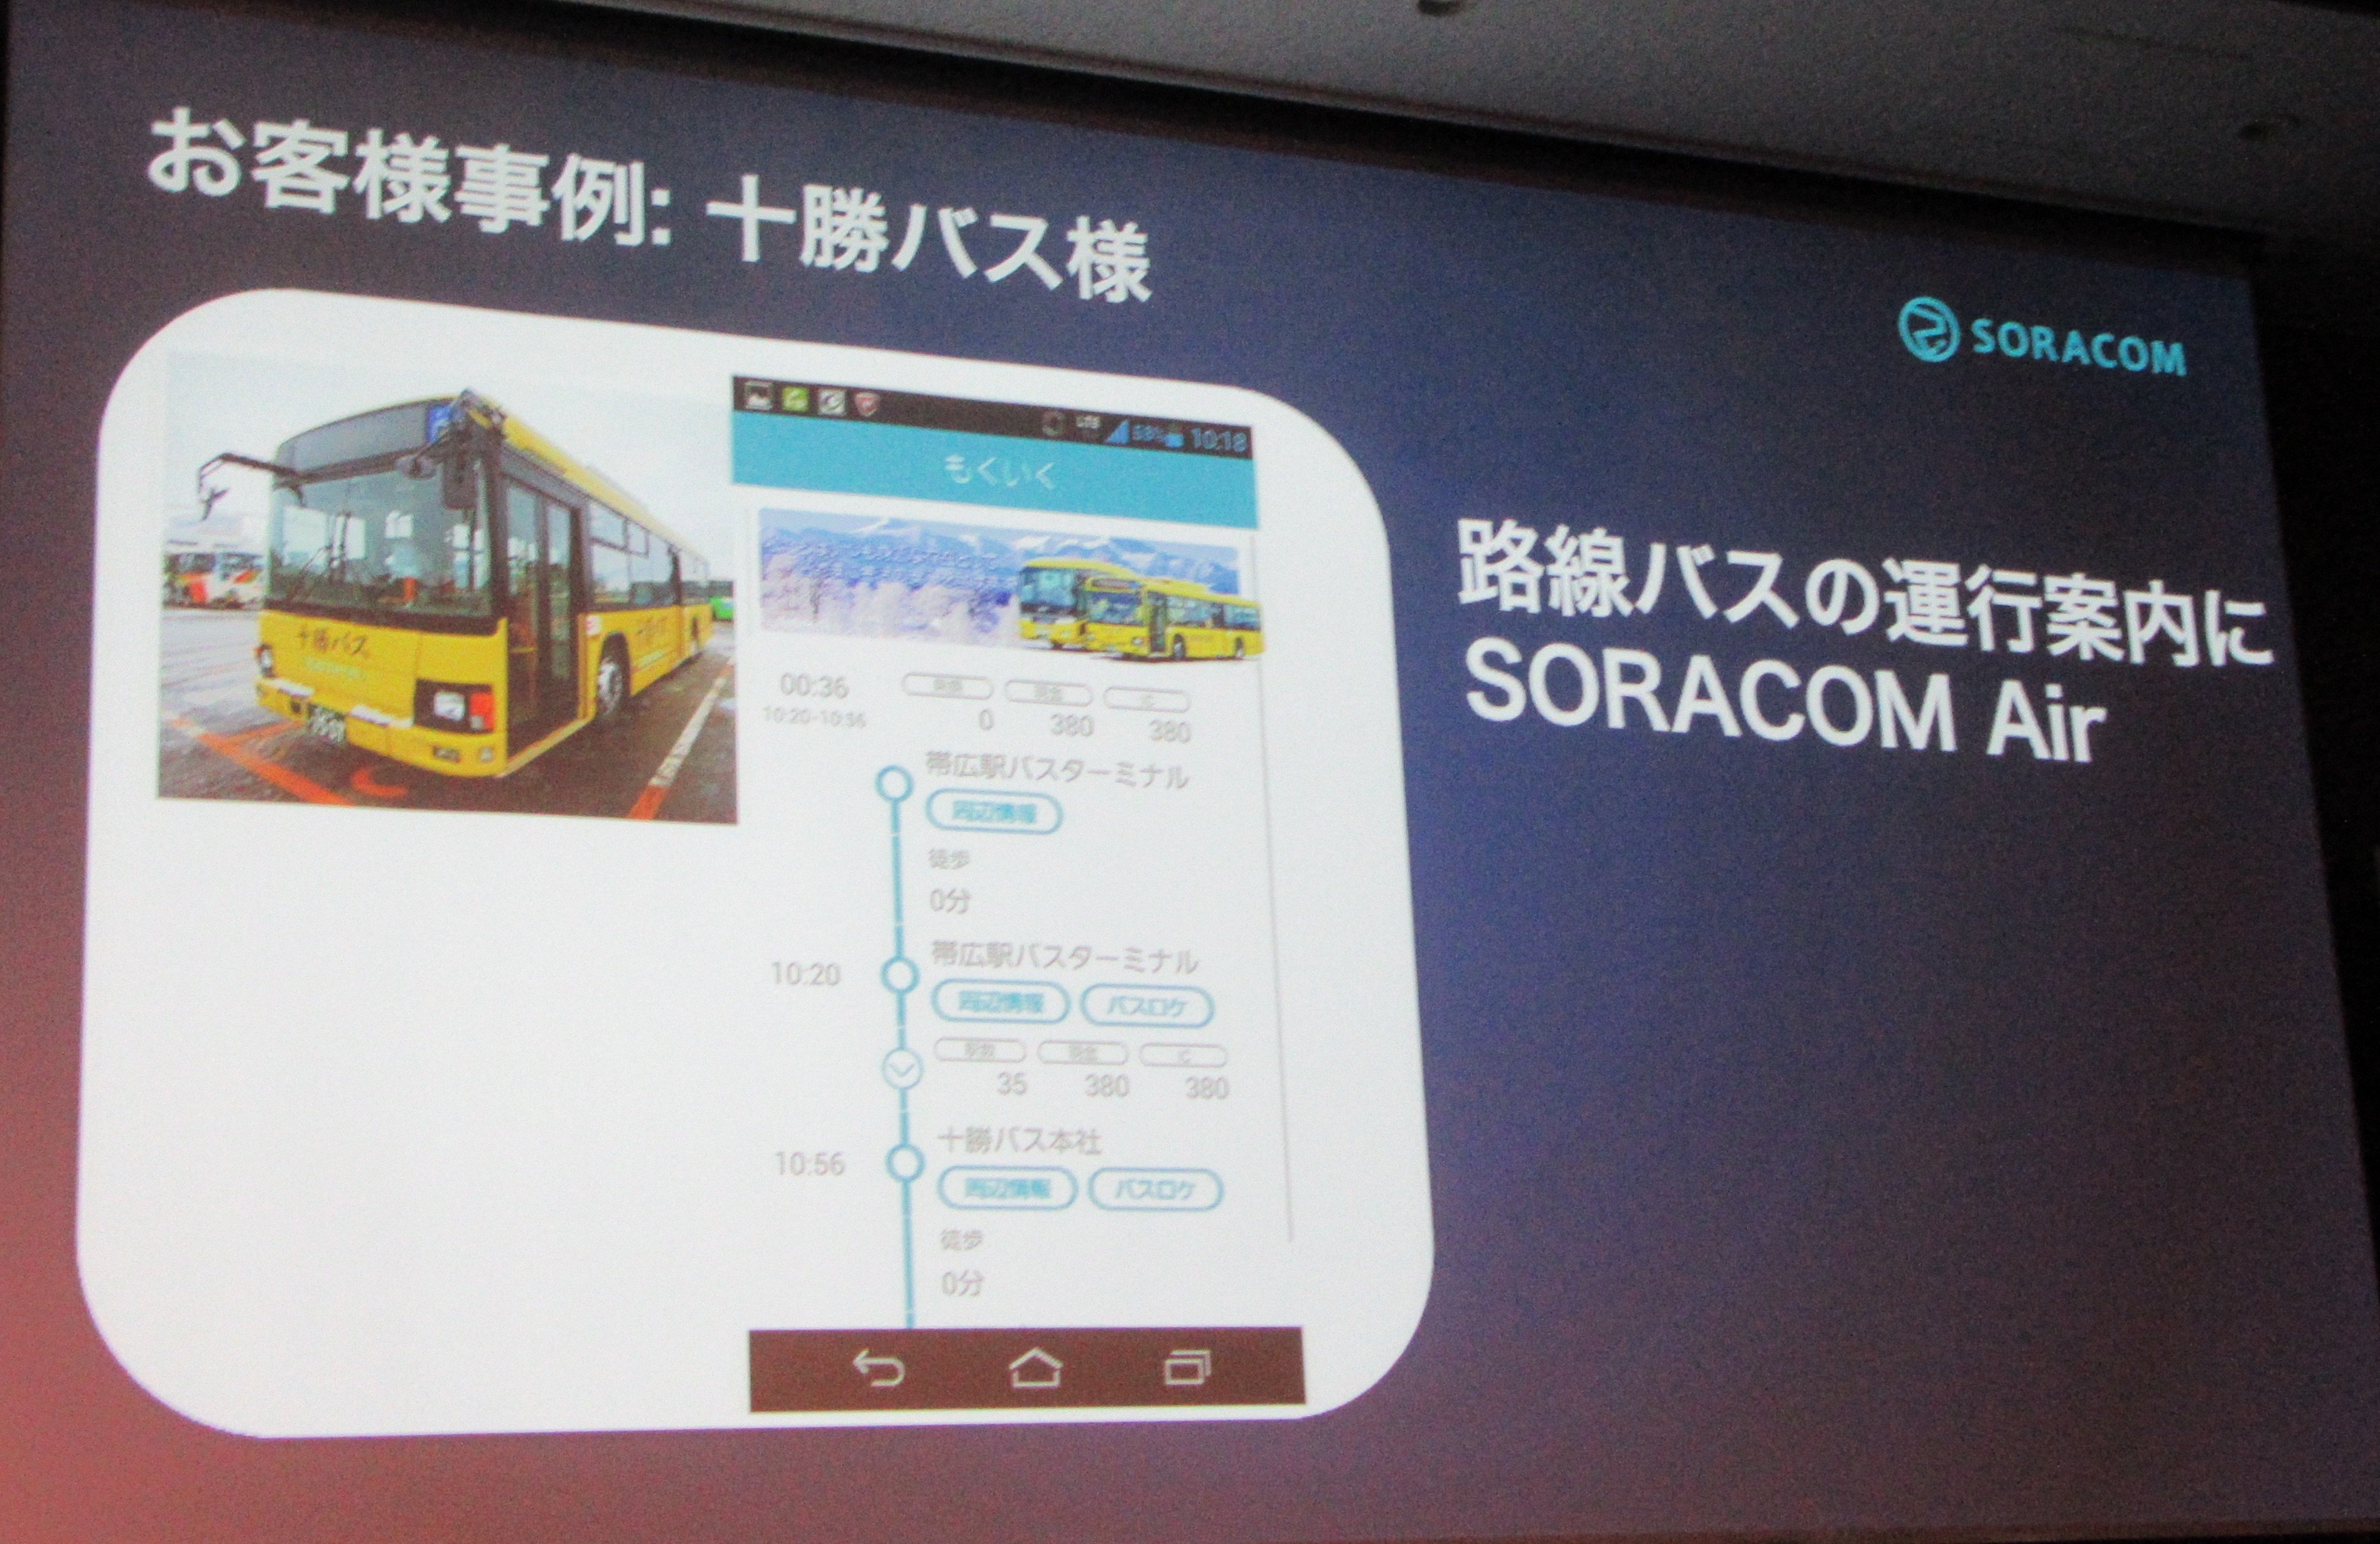 soracom-connected-01keynote_16